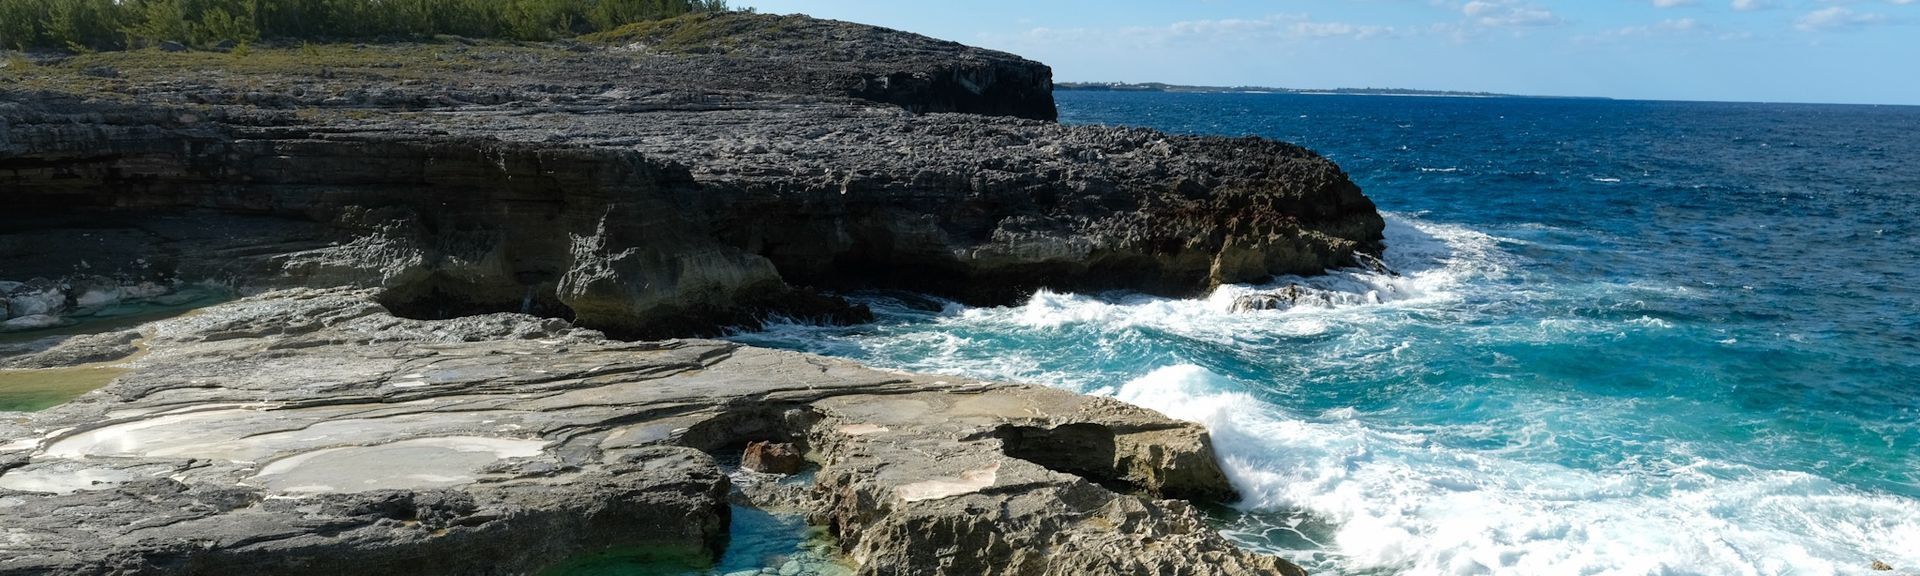 Hut Point Beach, Governor's Harbour, Central Eleuthera, Bahamas